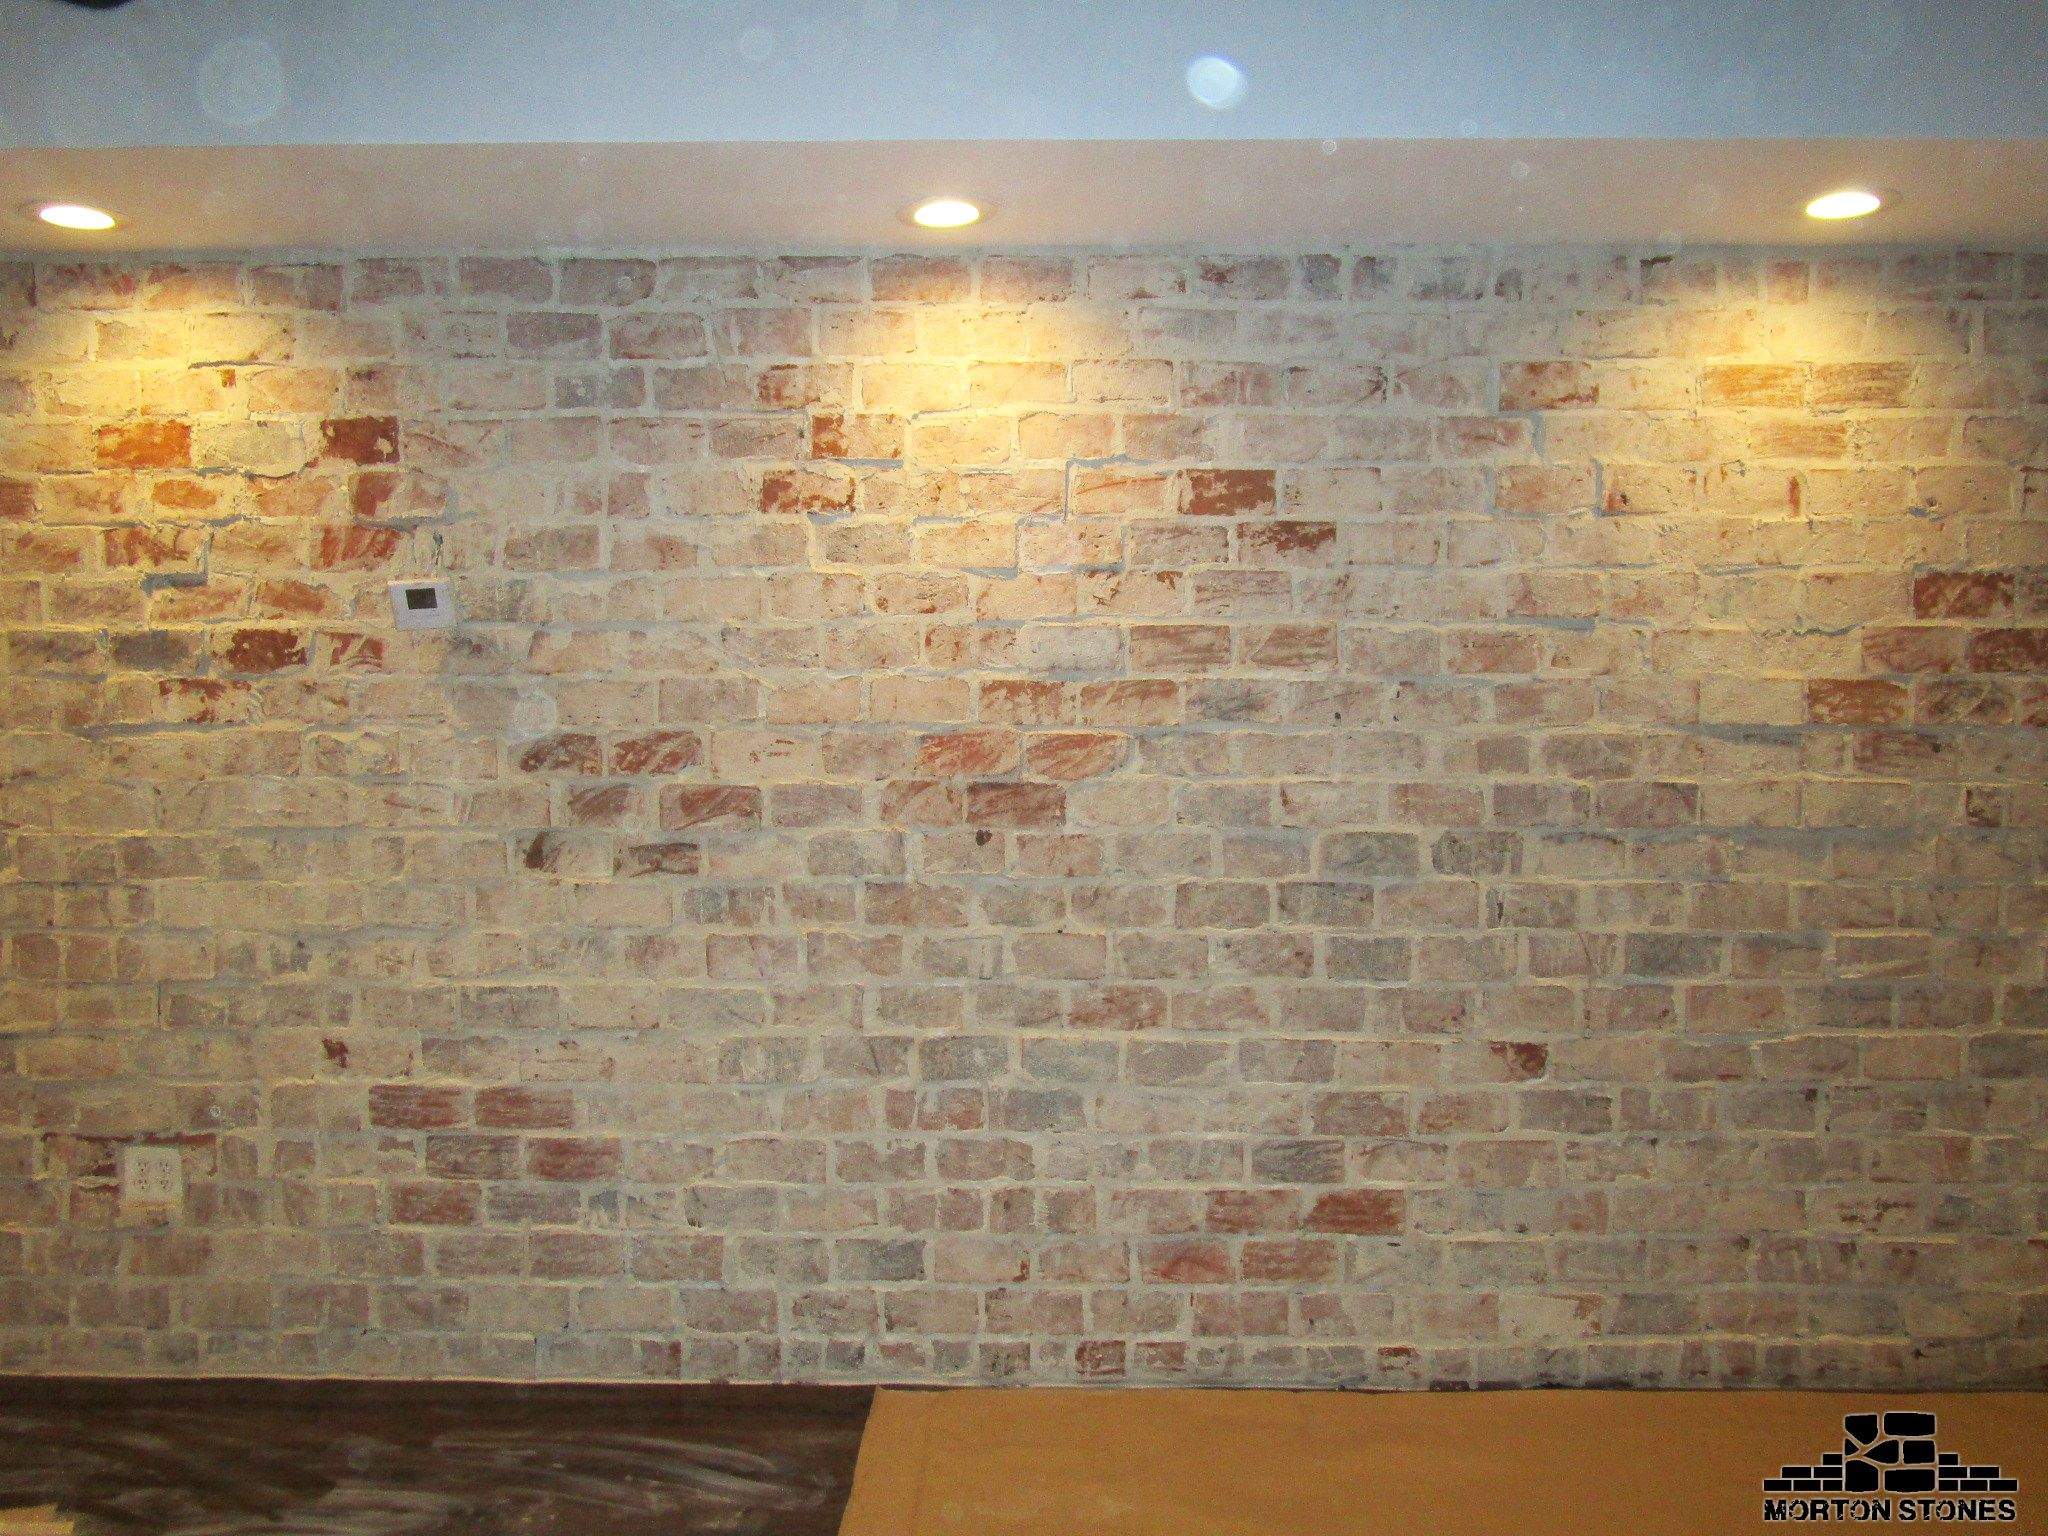 A Trendy Rustic Brick Feature Wall In A Restaurant #Mortonstones